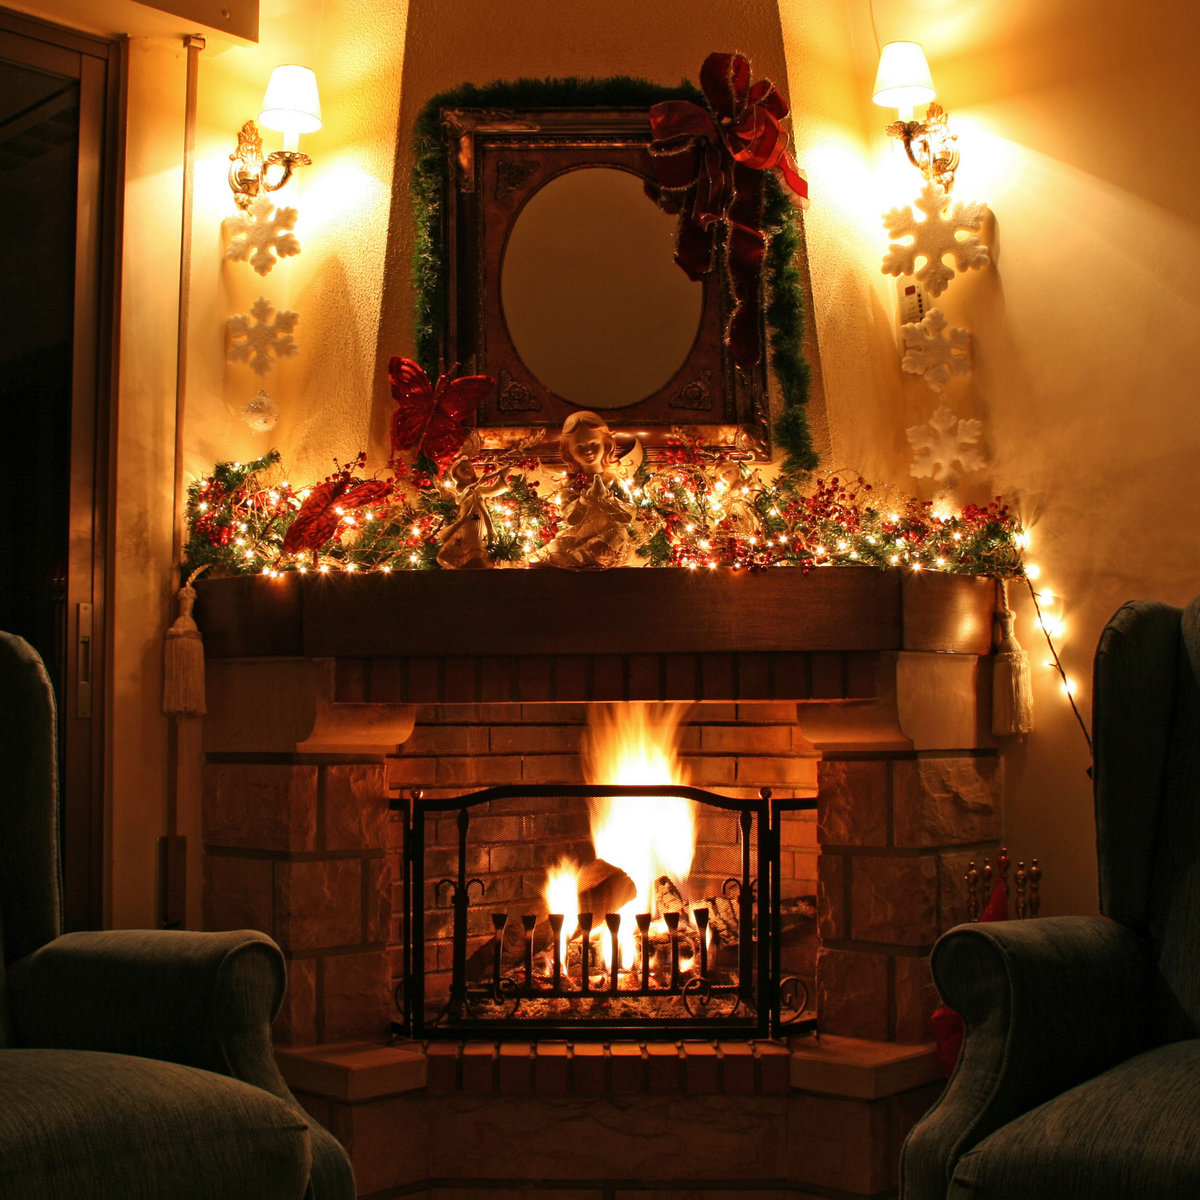 Fireplace Sounds Relaxing Fire Sound 1 Hour Christmas Fireplace With Crackling